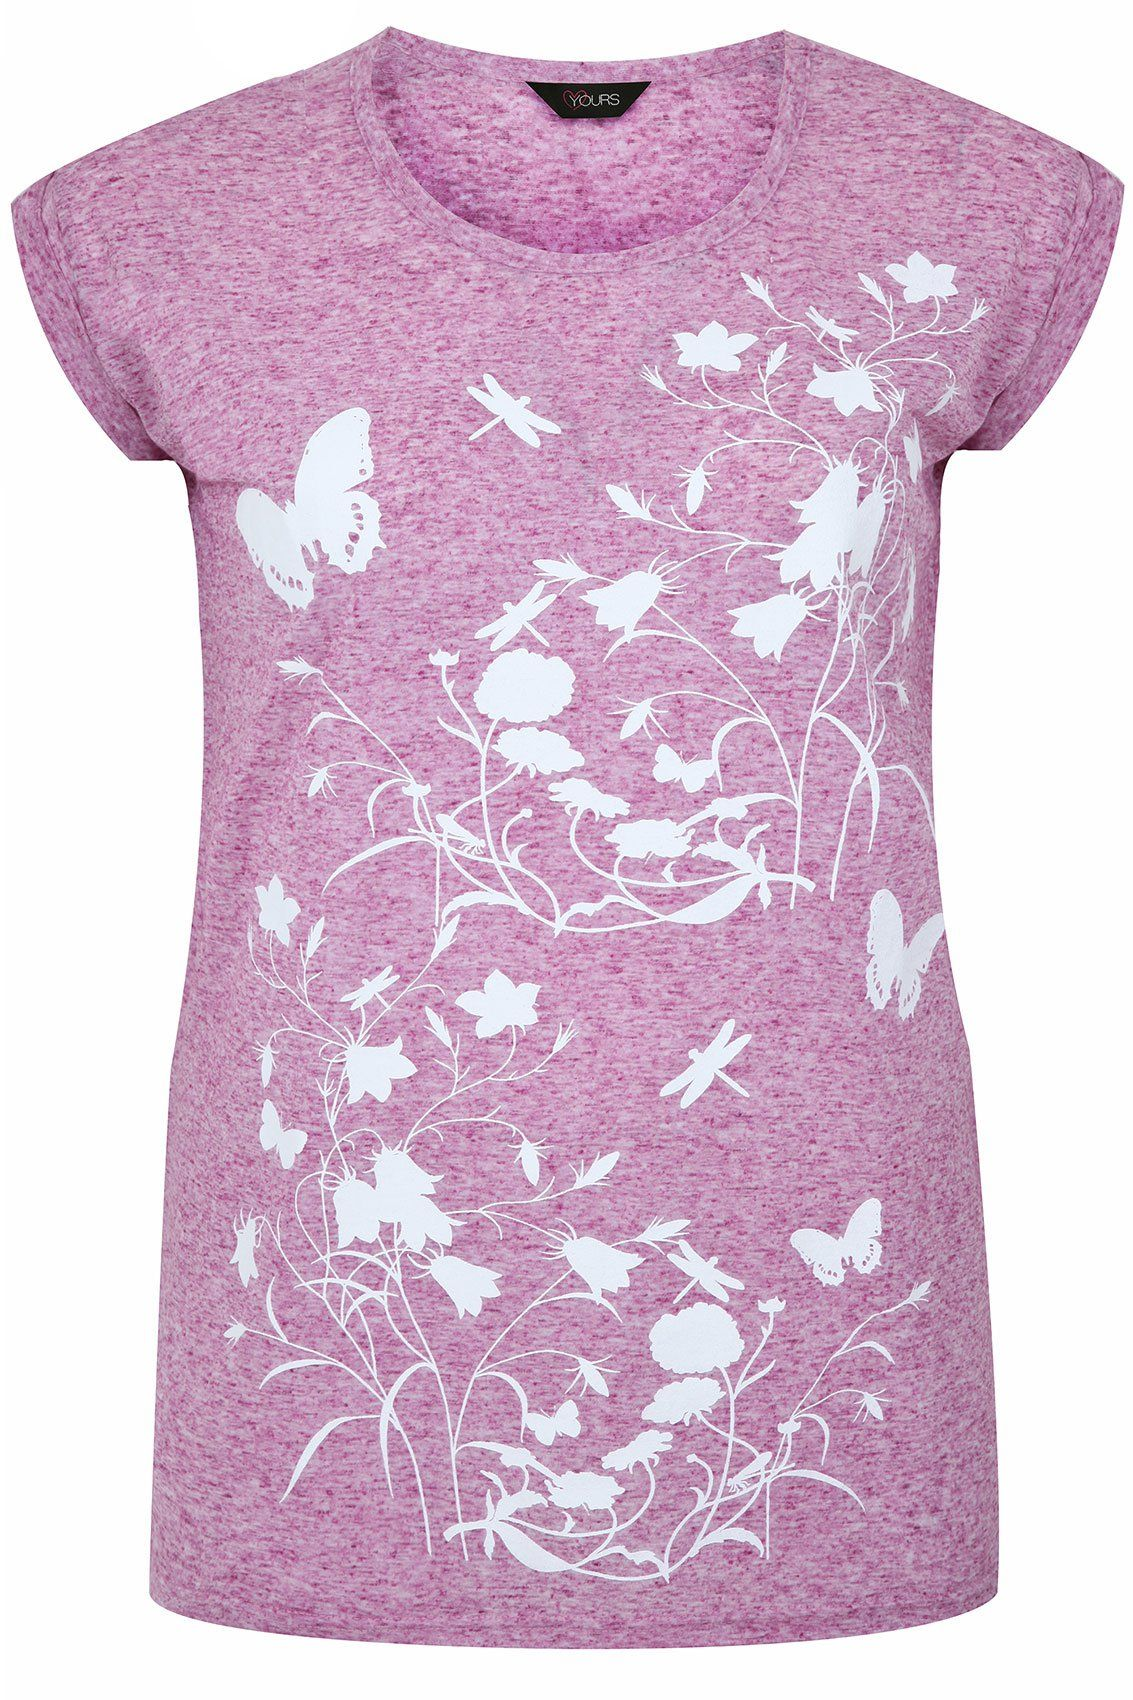 95eb79164c2 Yoursclothing Plus Size Womens Floral Butterfly Print Short Sleeve T-shirt  Size 24-26 Pink